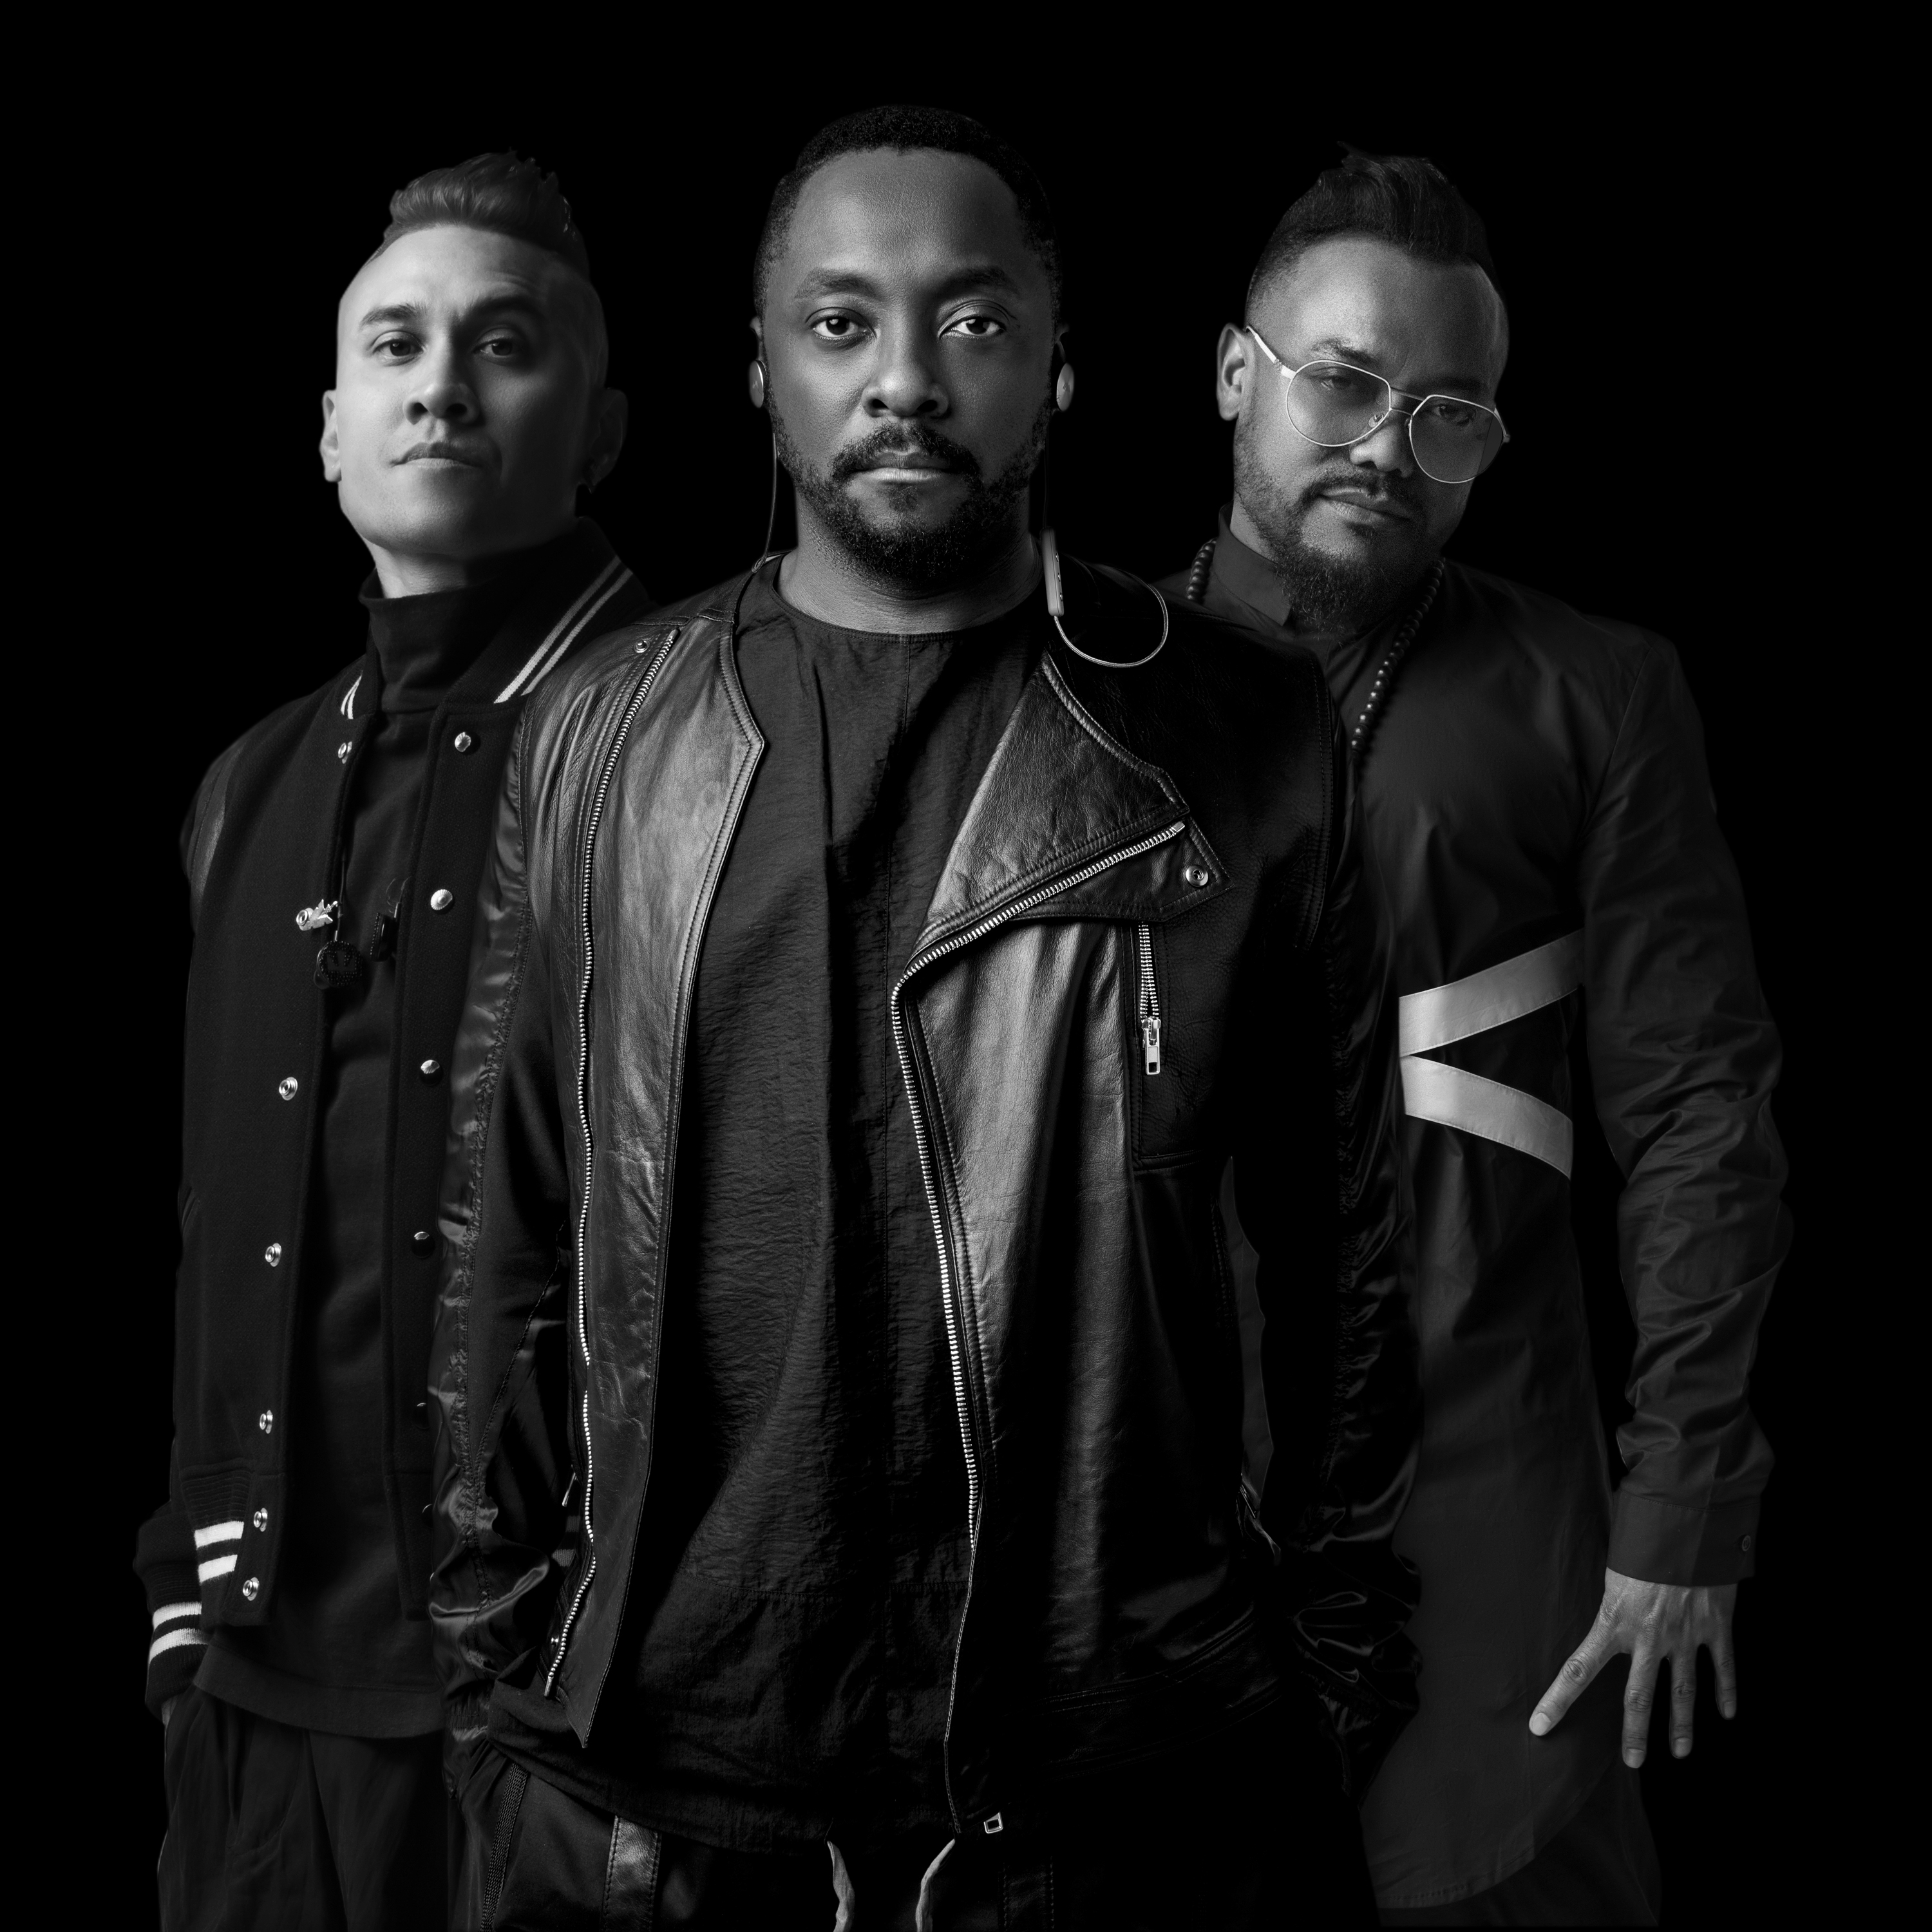 Vip nation europe black eyed peas is there a customer service agent i can contact if i have any questions about my purchase you can contact vip nation europe via vipnation livenation m4hsunfo